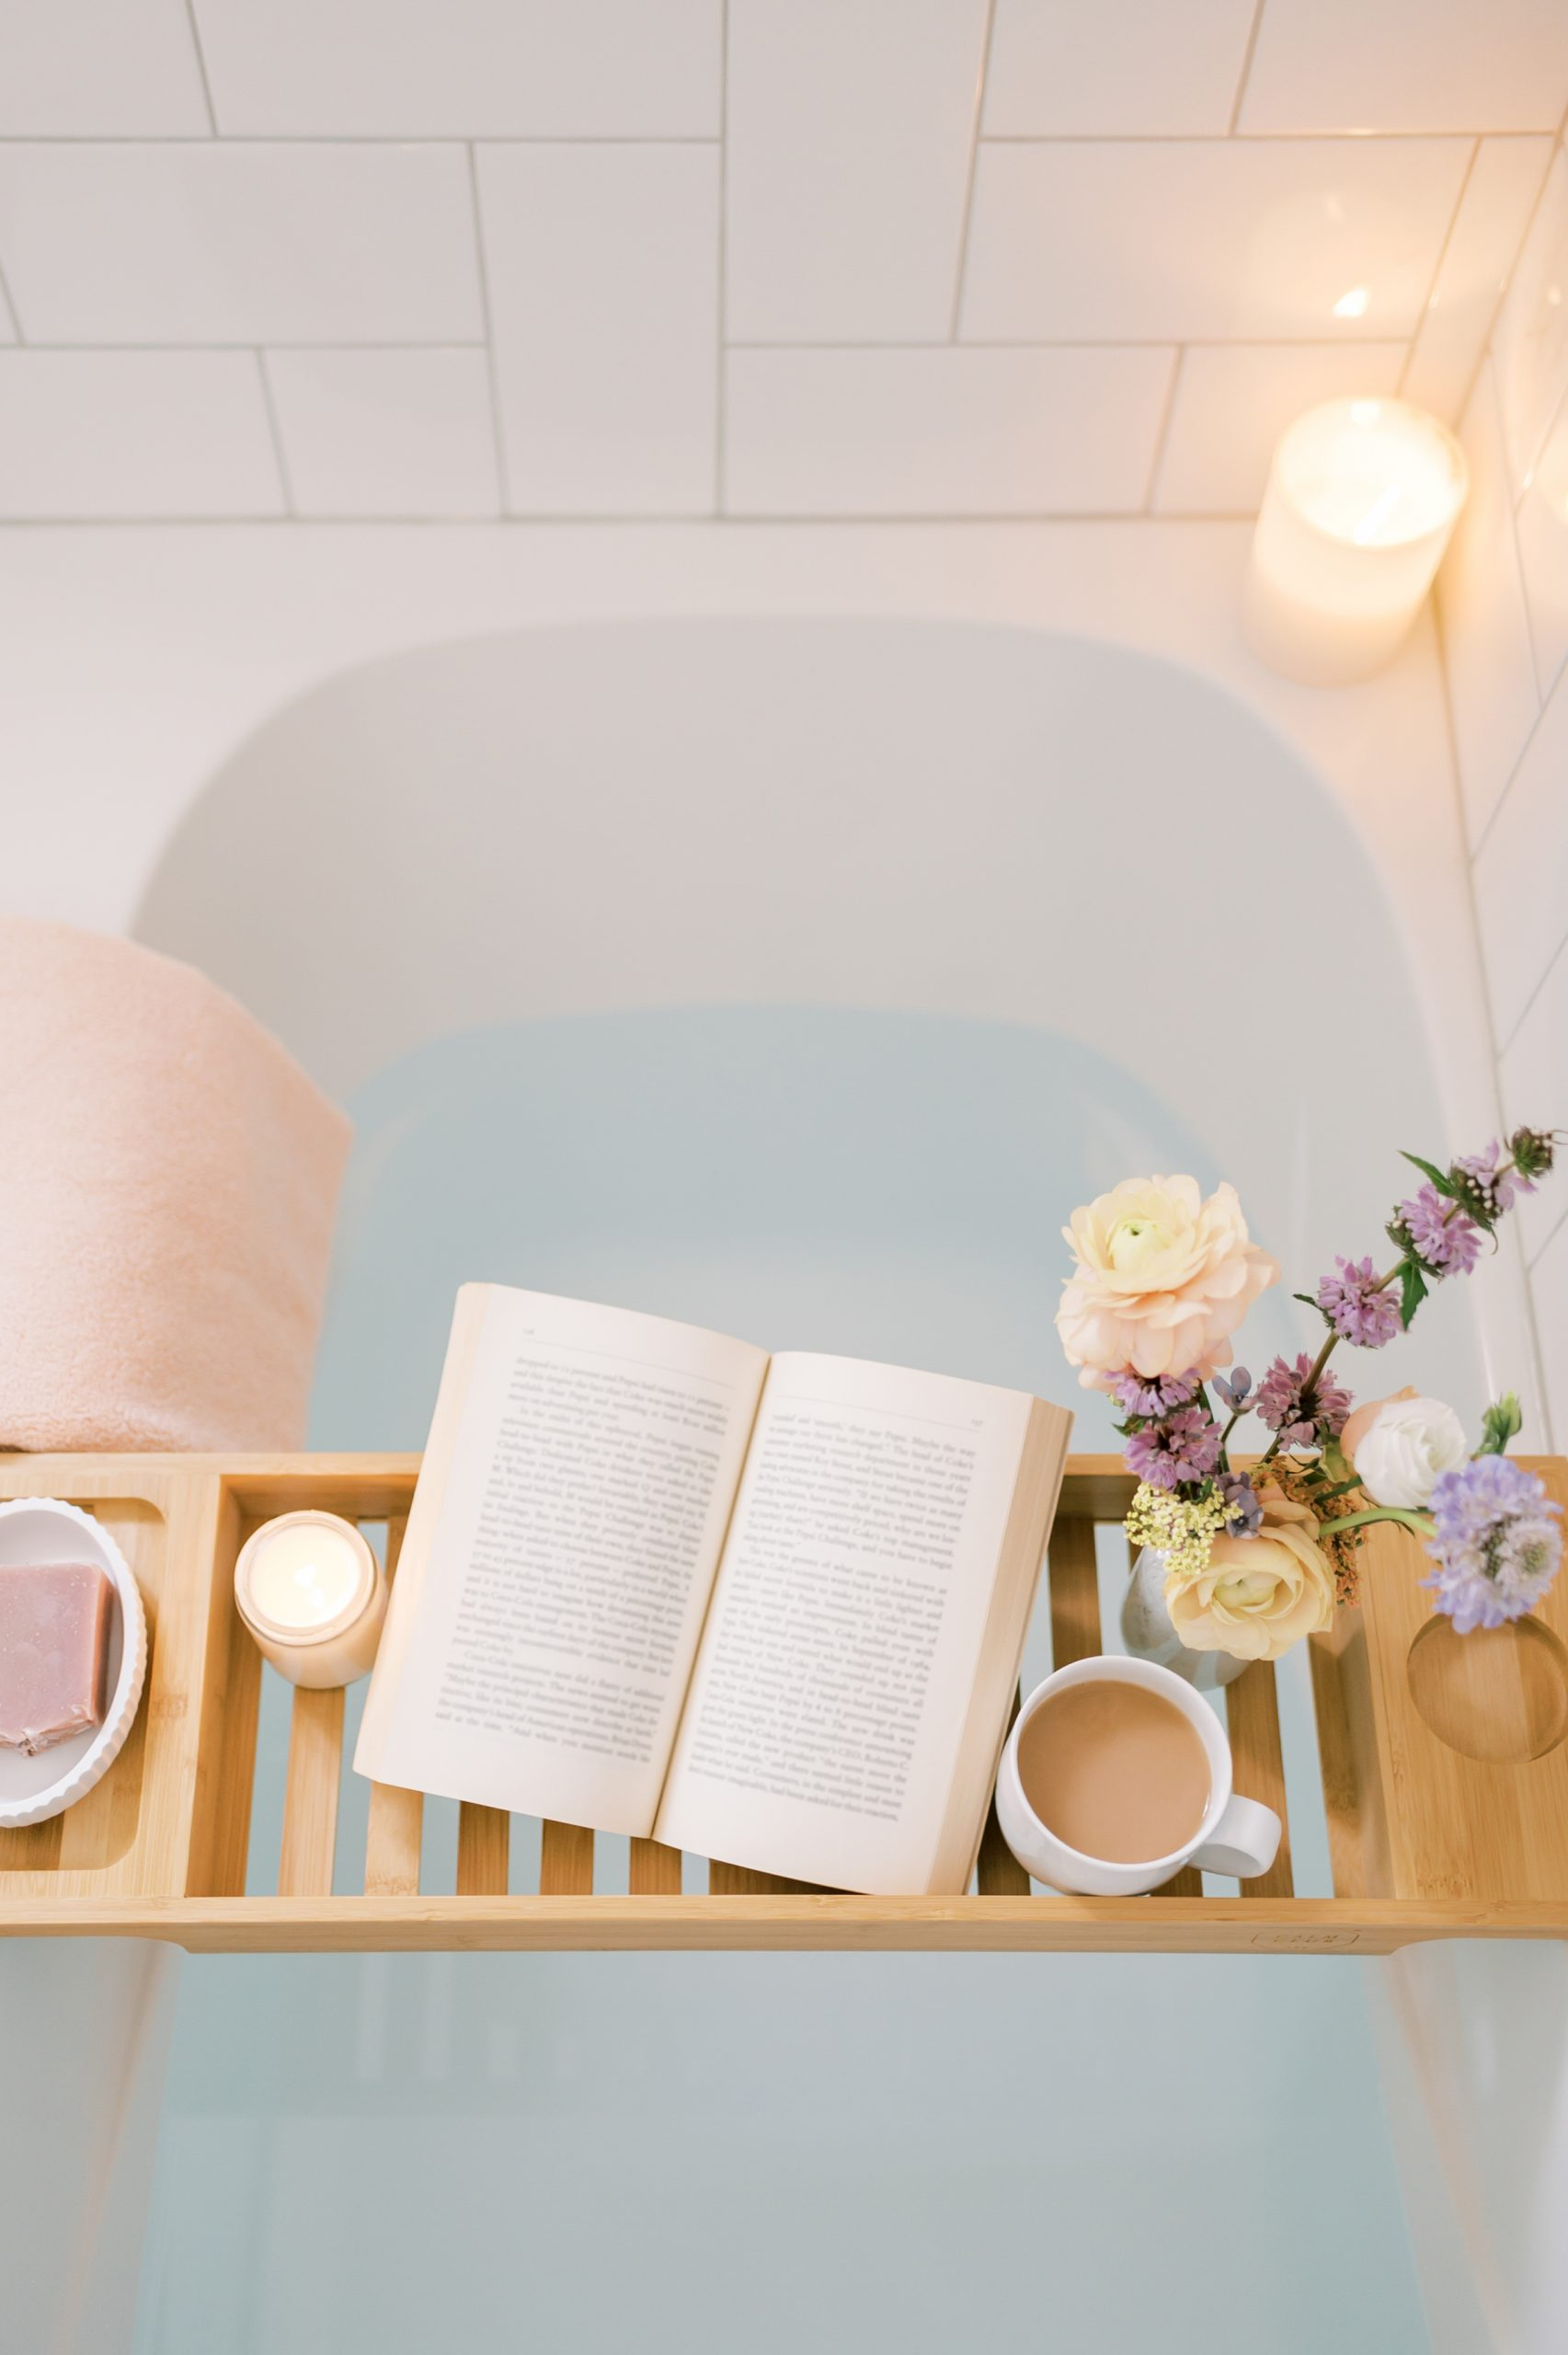 Beauty Self-Care Guide   With Love, Vienna Lyn